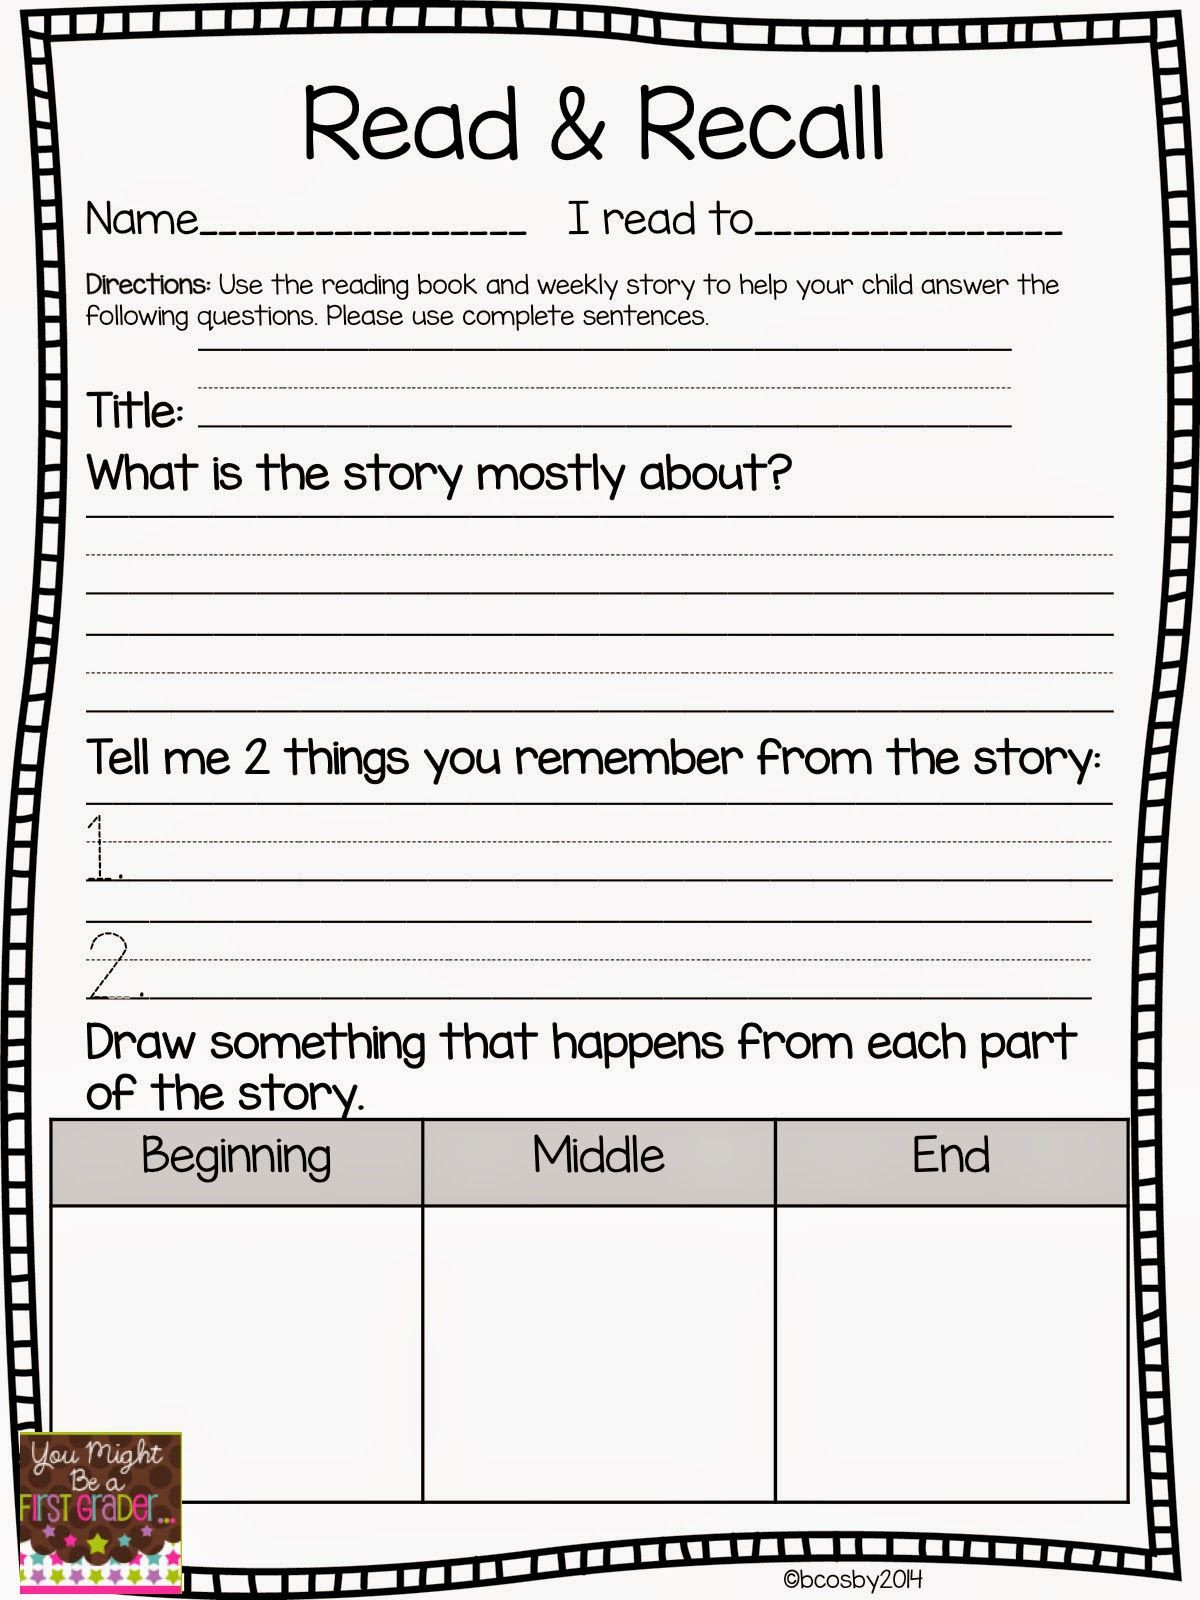 2nd Grade Reading Response Worksheets Reading Prehension You Might Be A First Grader